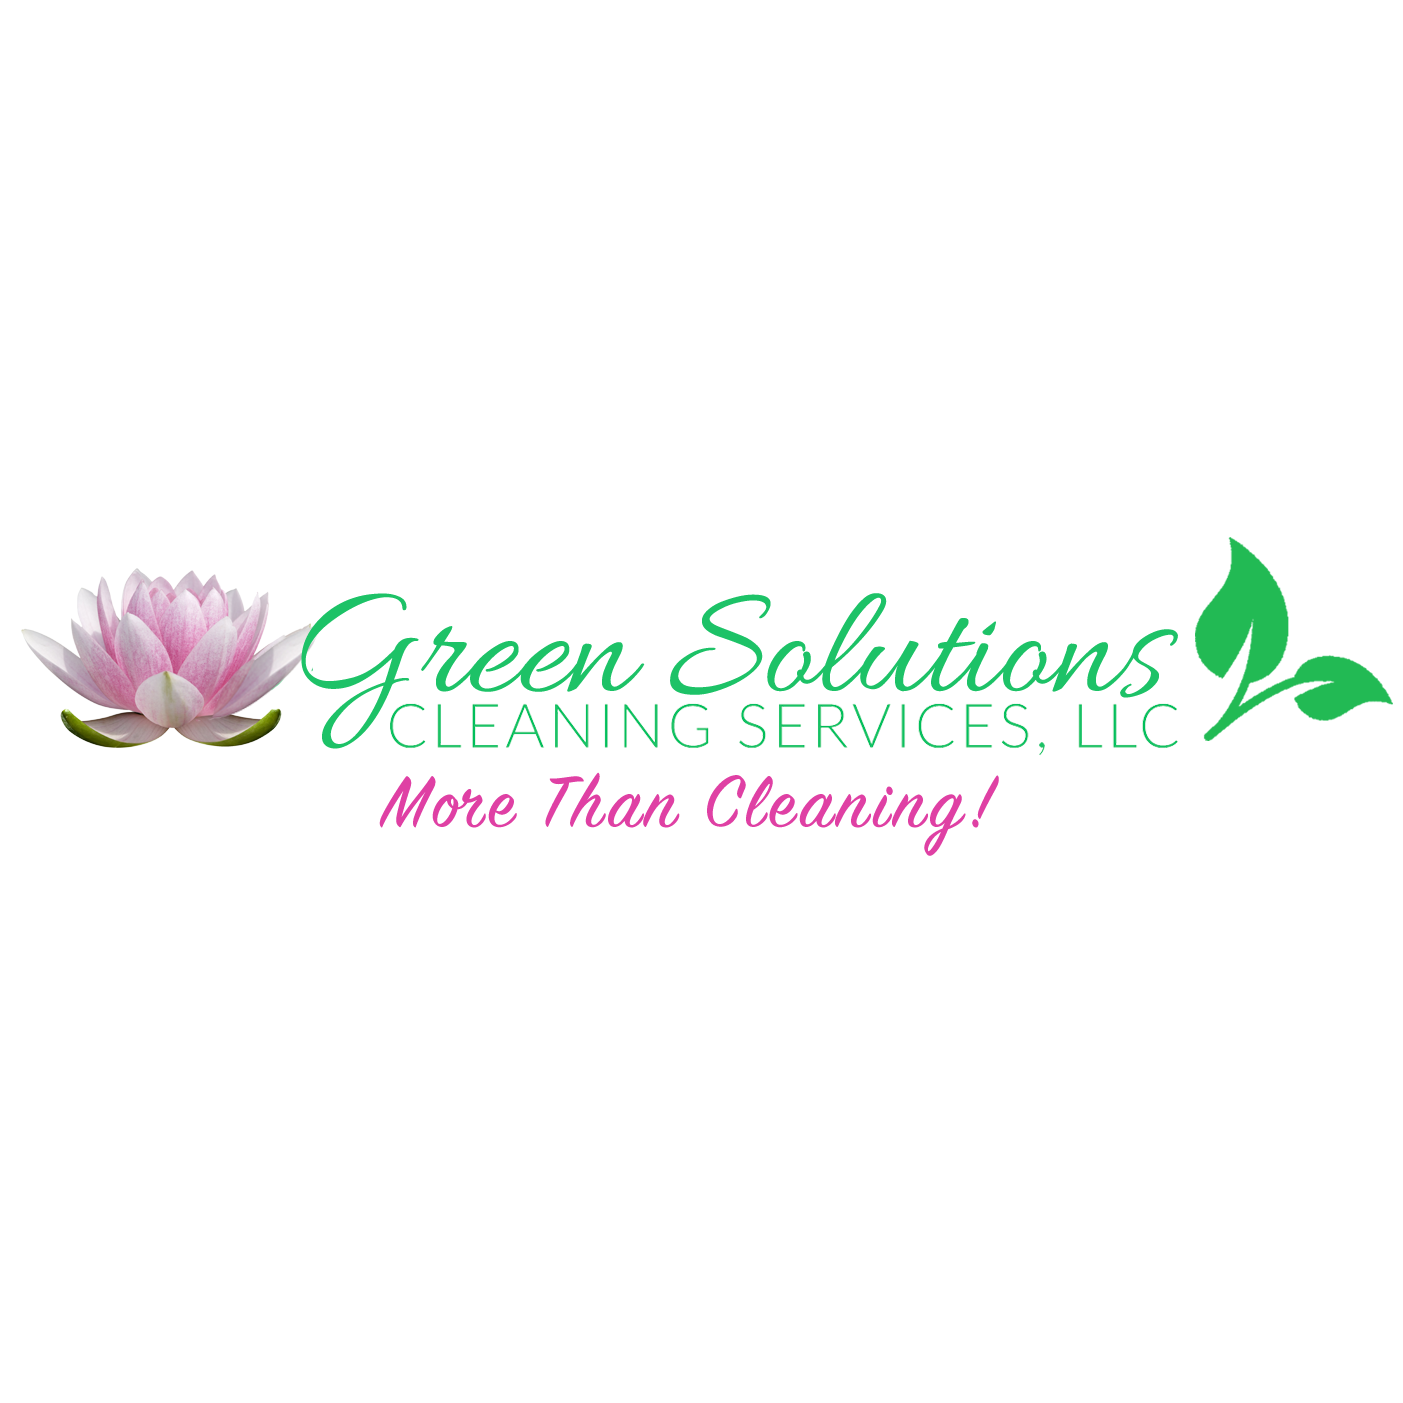 The green solution coupon code